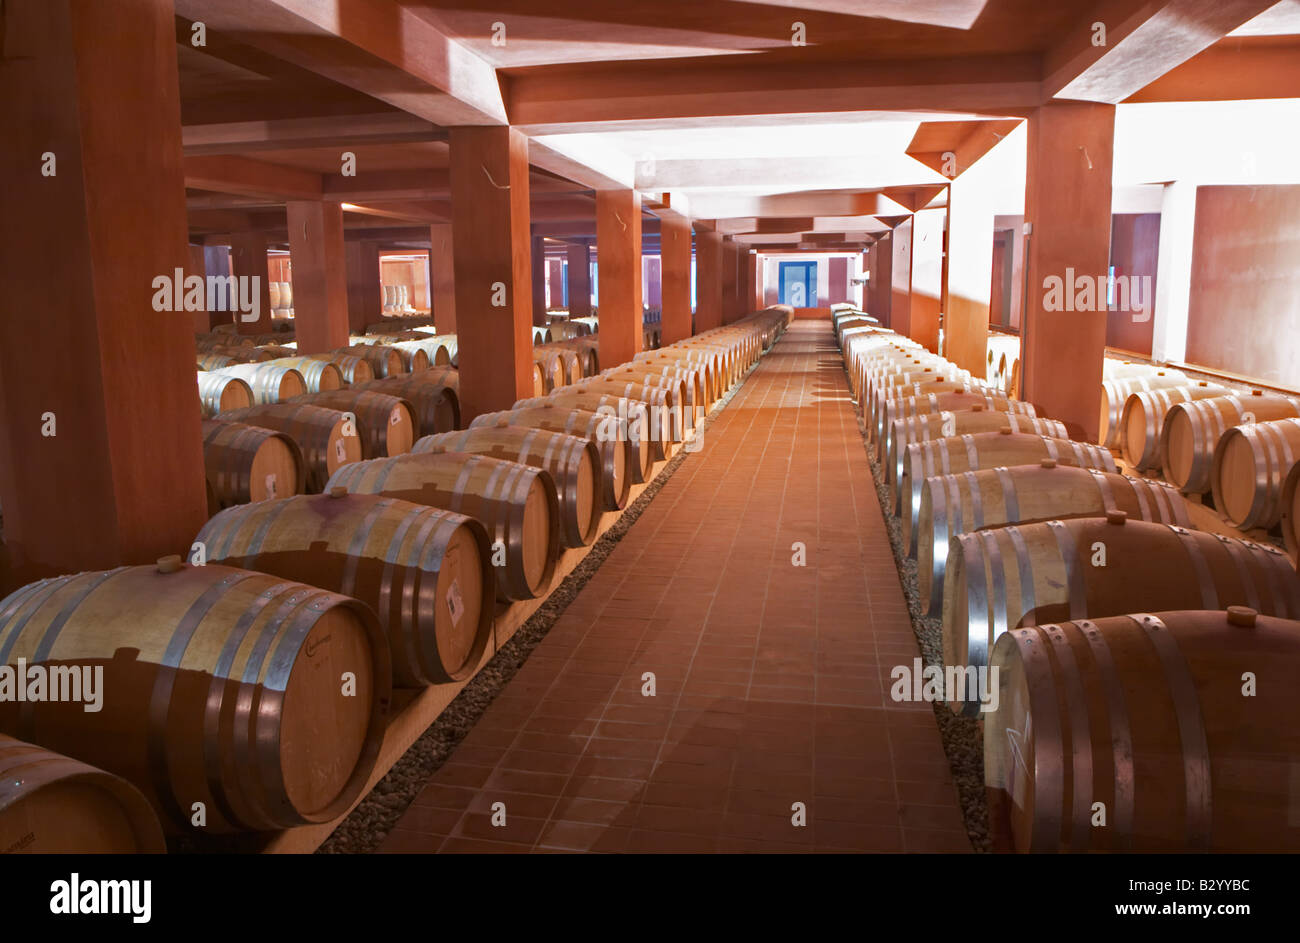 Oak barrel aging and fermentation cellar. Alpha Estate Winery, Amyndeon, Macedonia, Greece - Stock Image